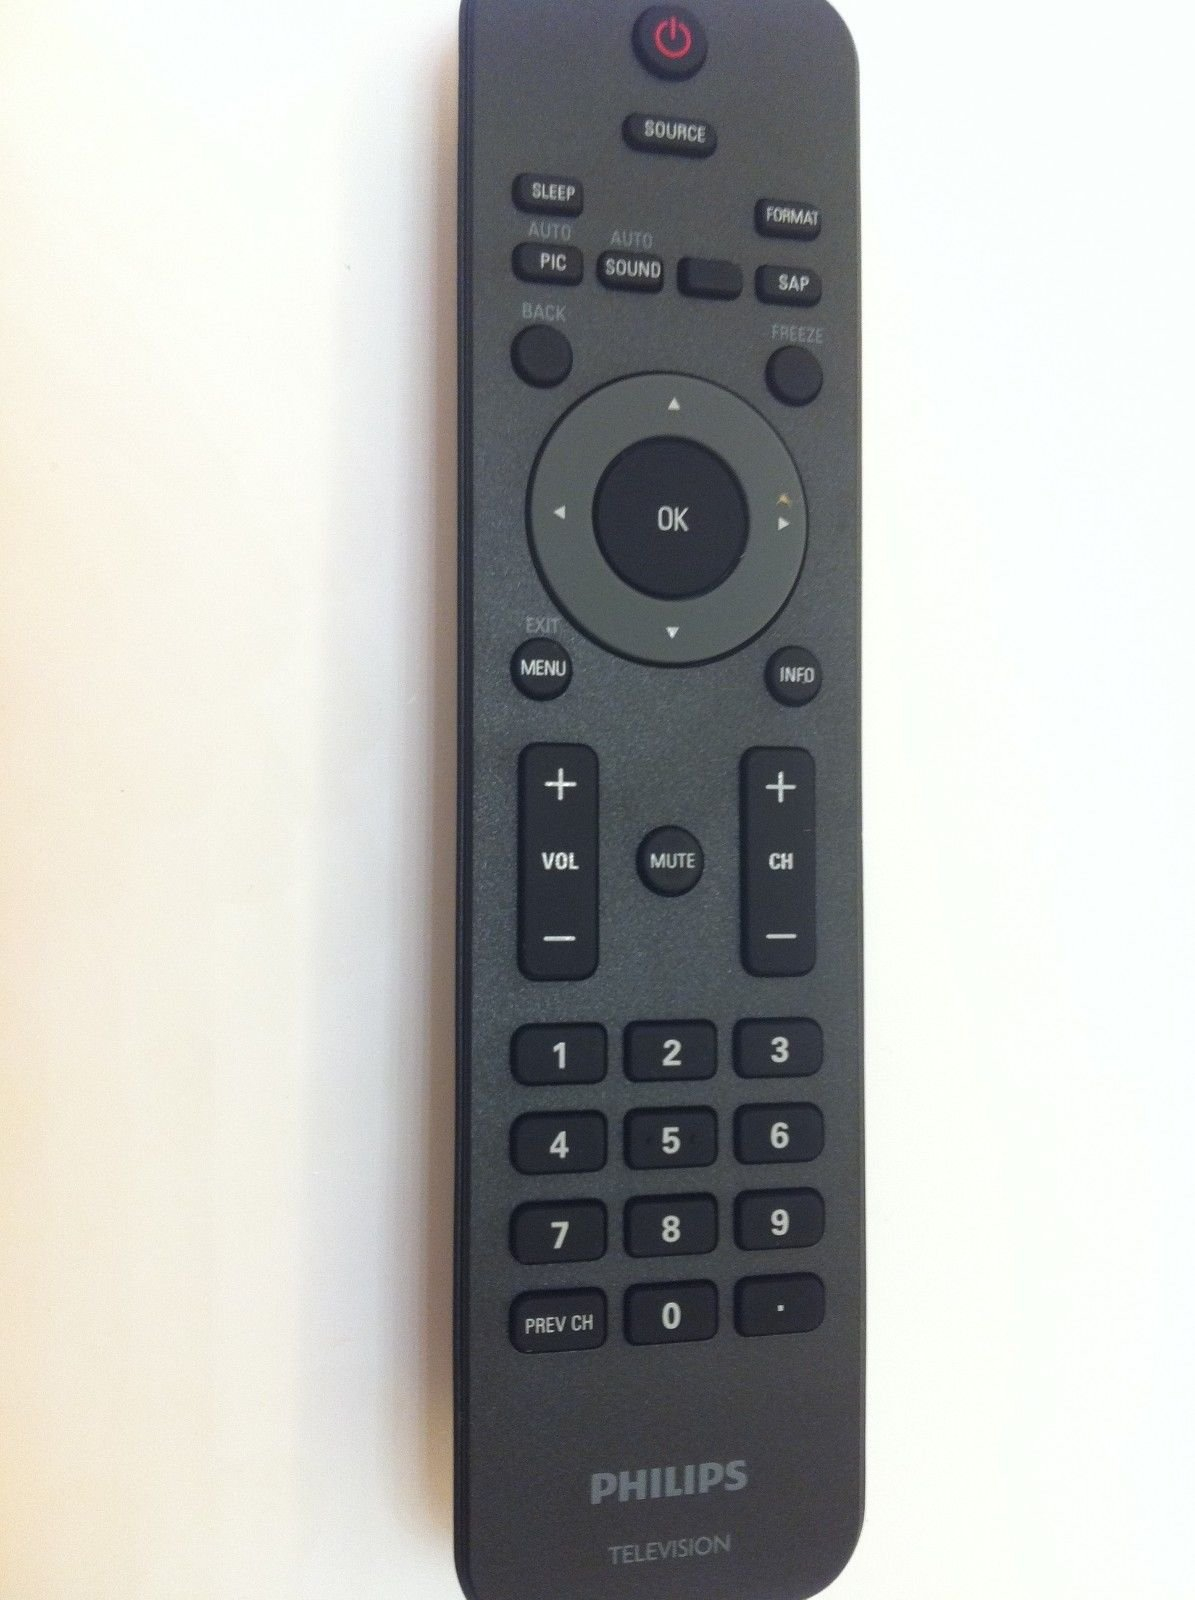 Control Remoto Original PHILIPS TV philips 32PFL3514D 32P...